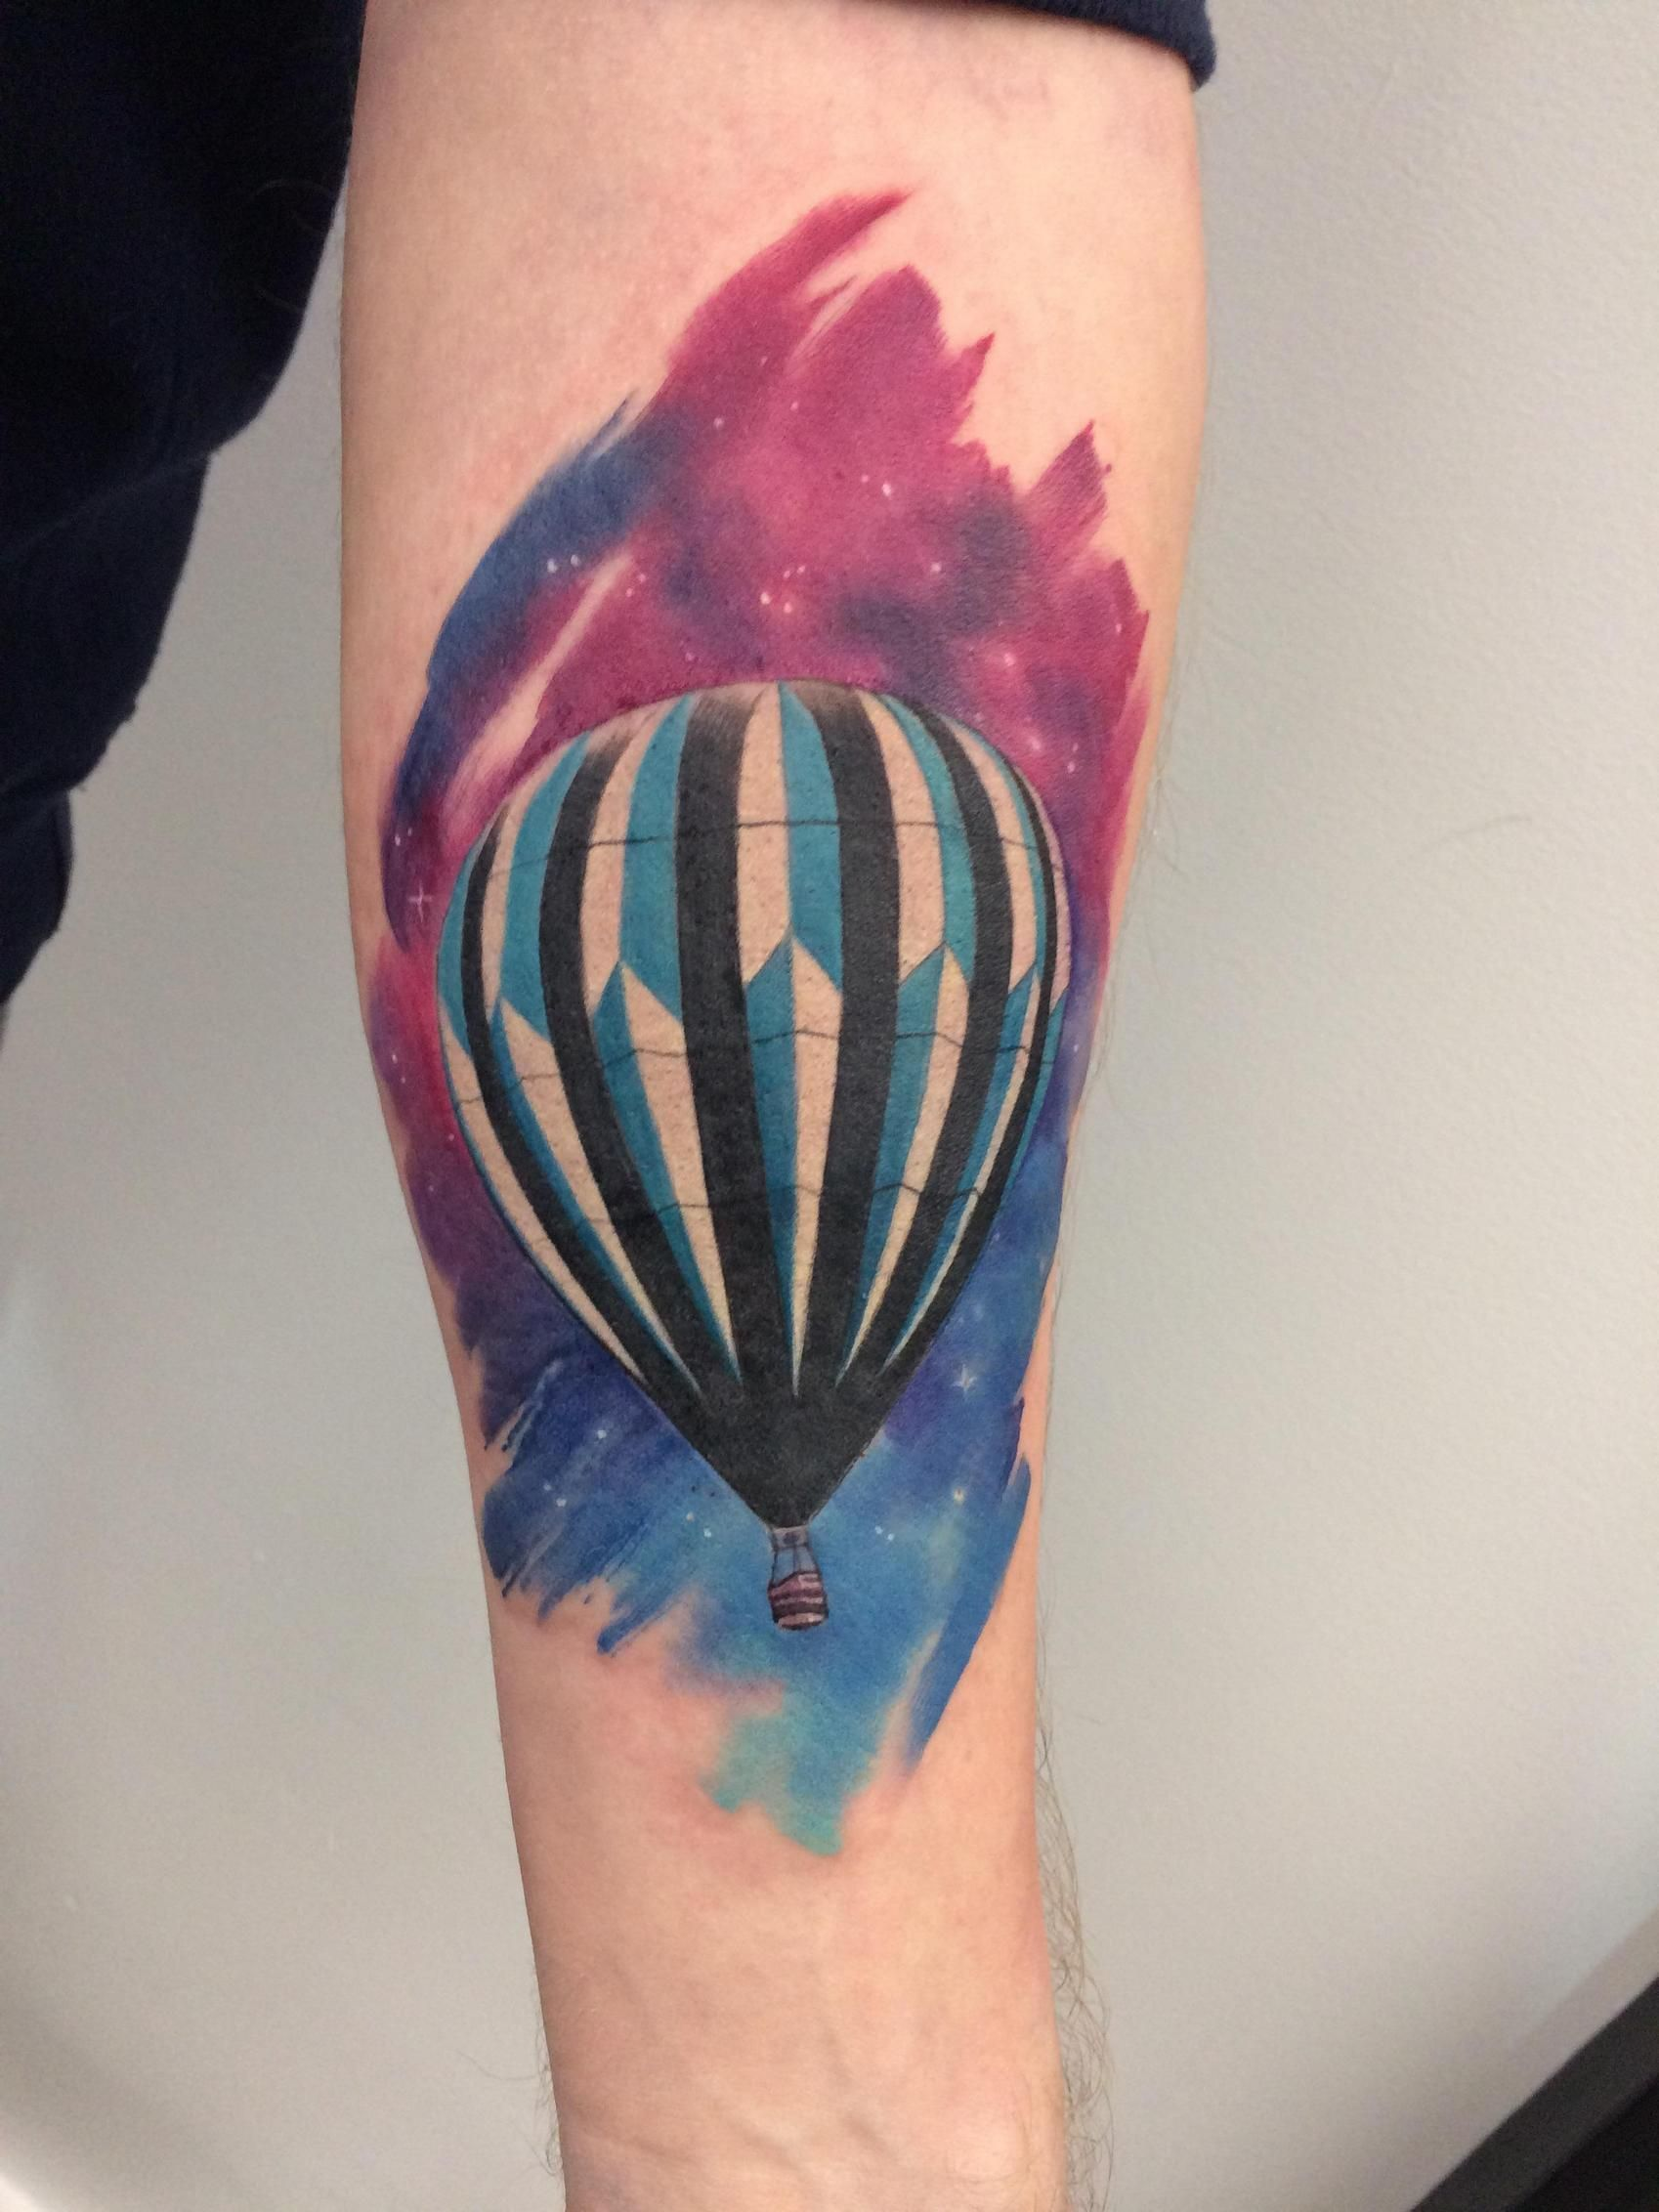 Balloon Space Arm Tattoo Small Watercolor Tattoo Tattoos